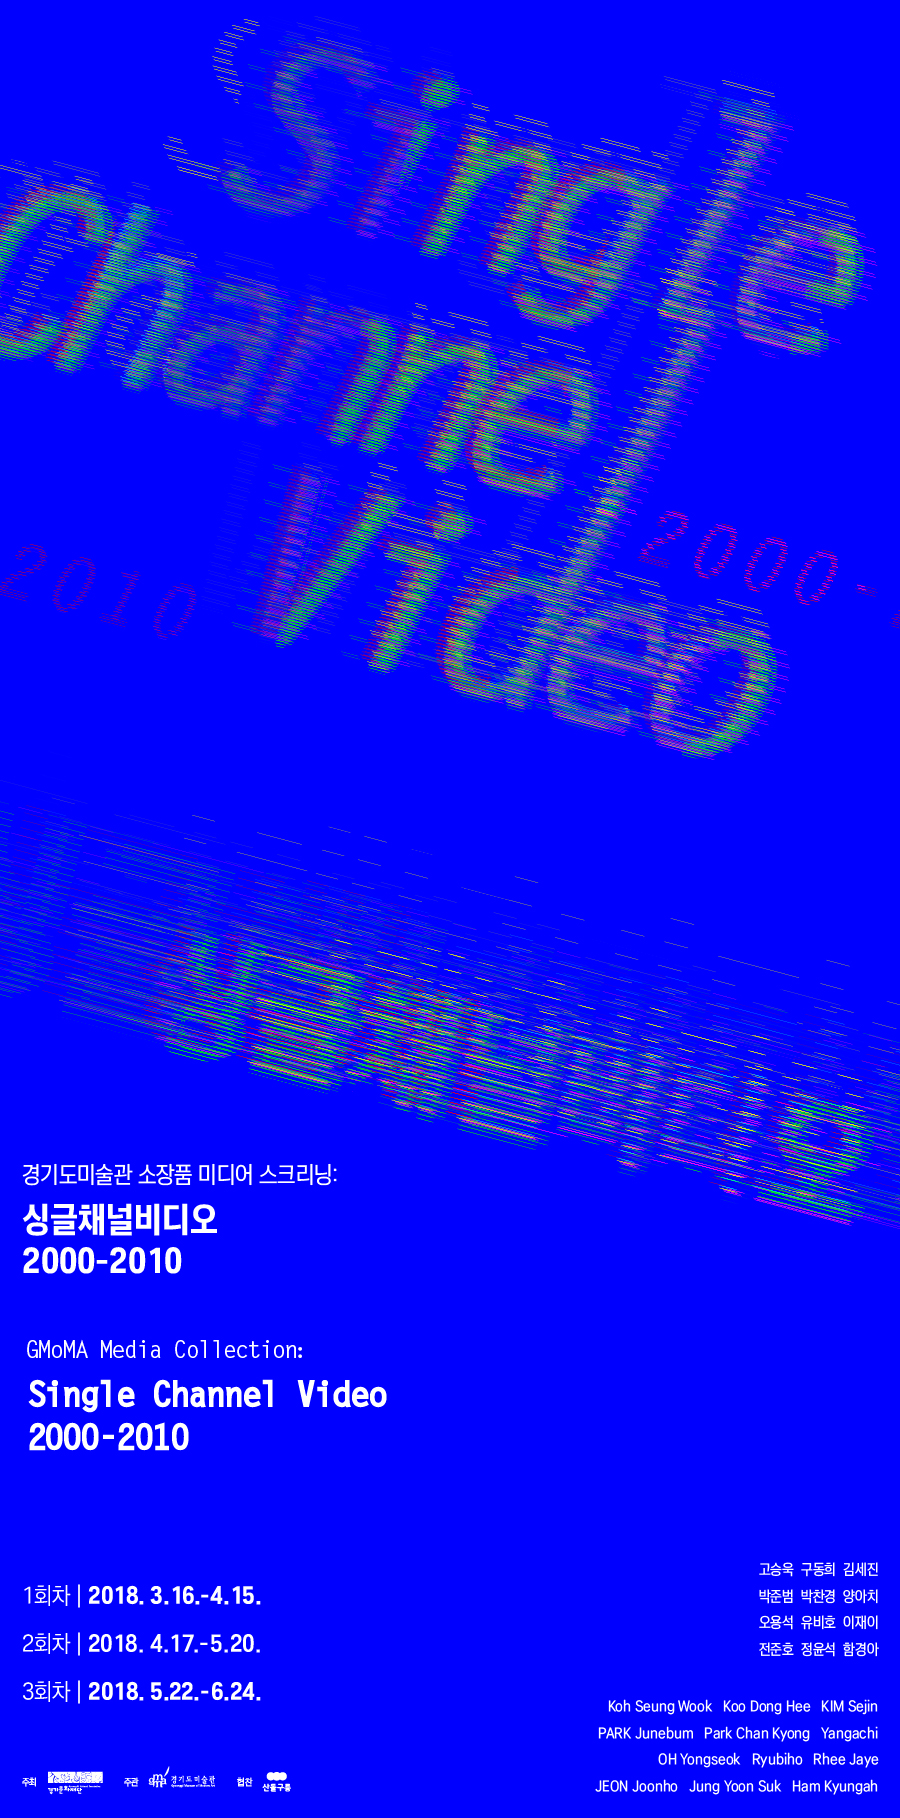 GMoMA Media Collection : Single Channel Video 2000-2010